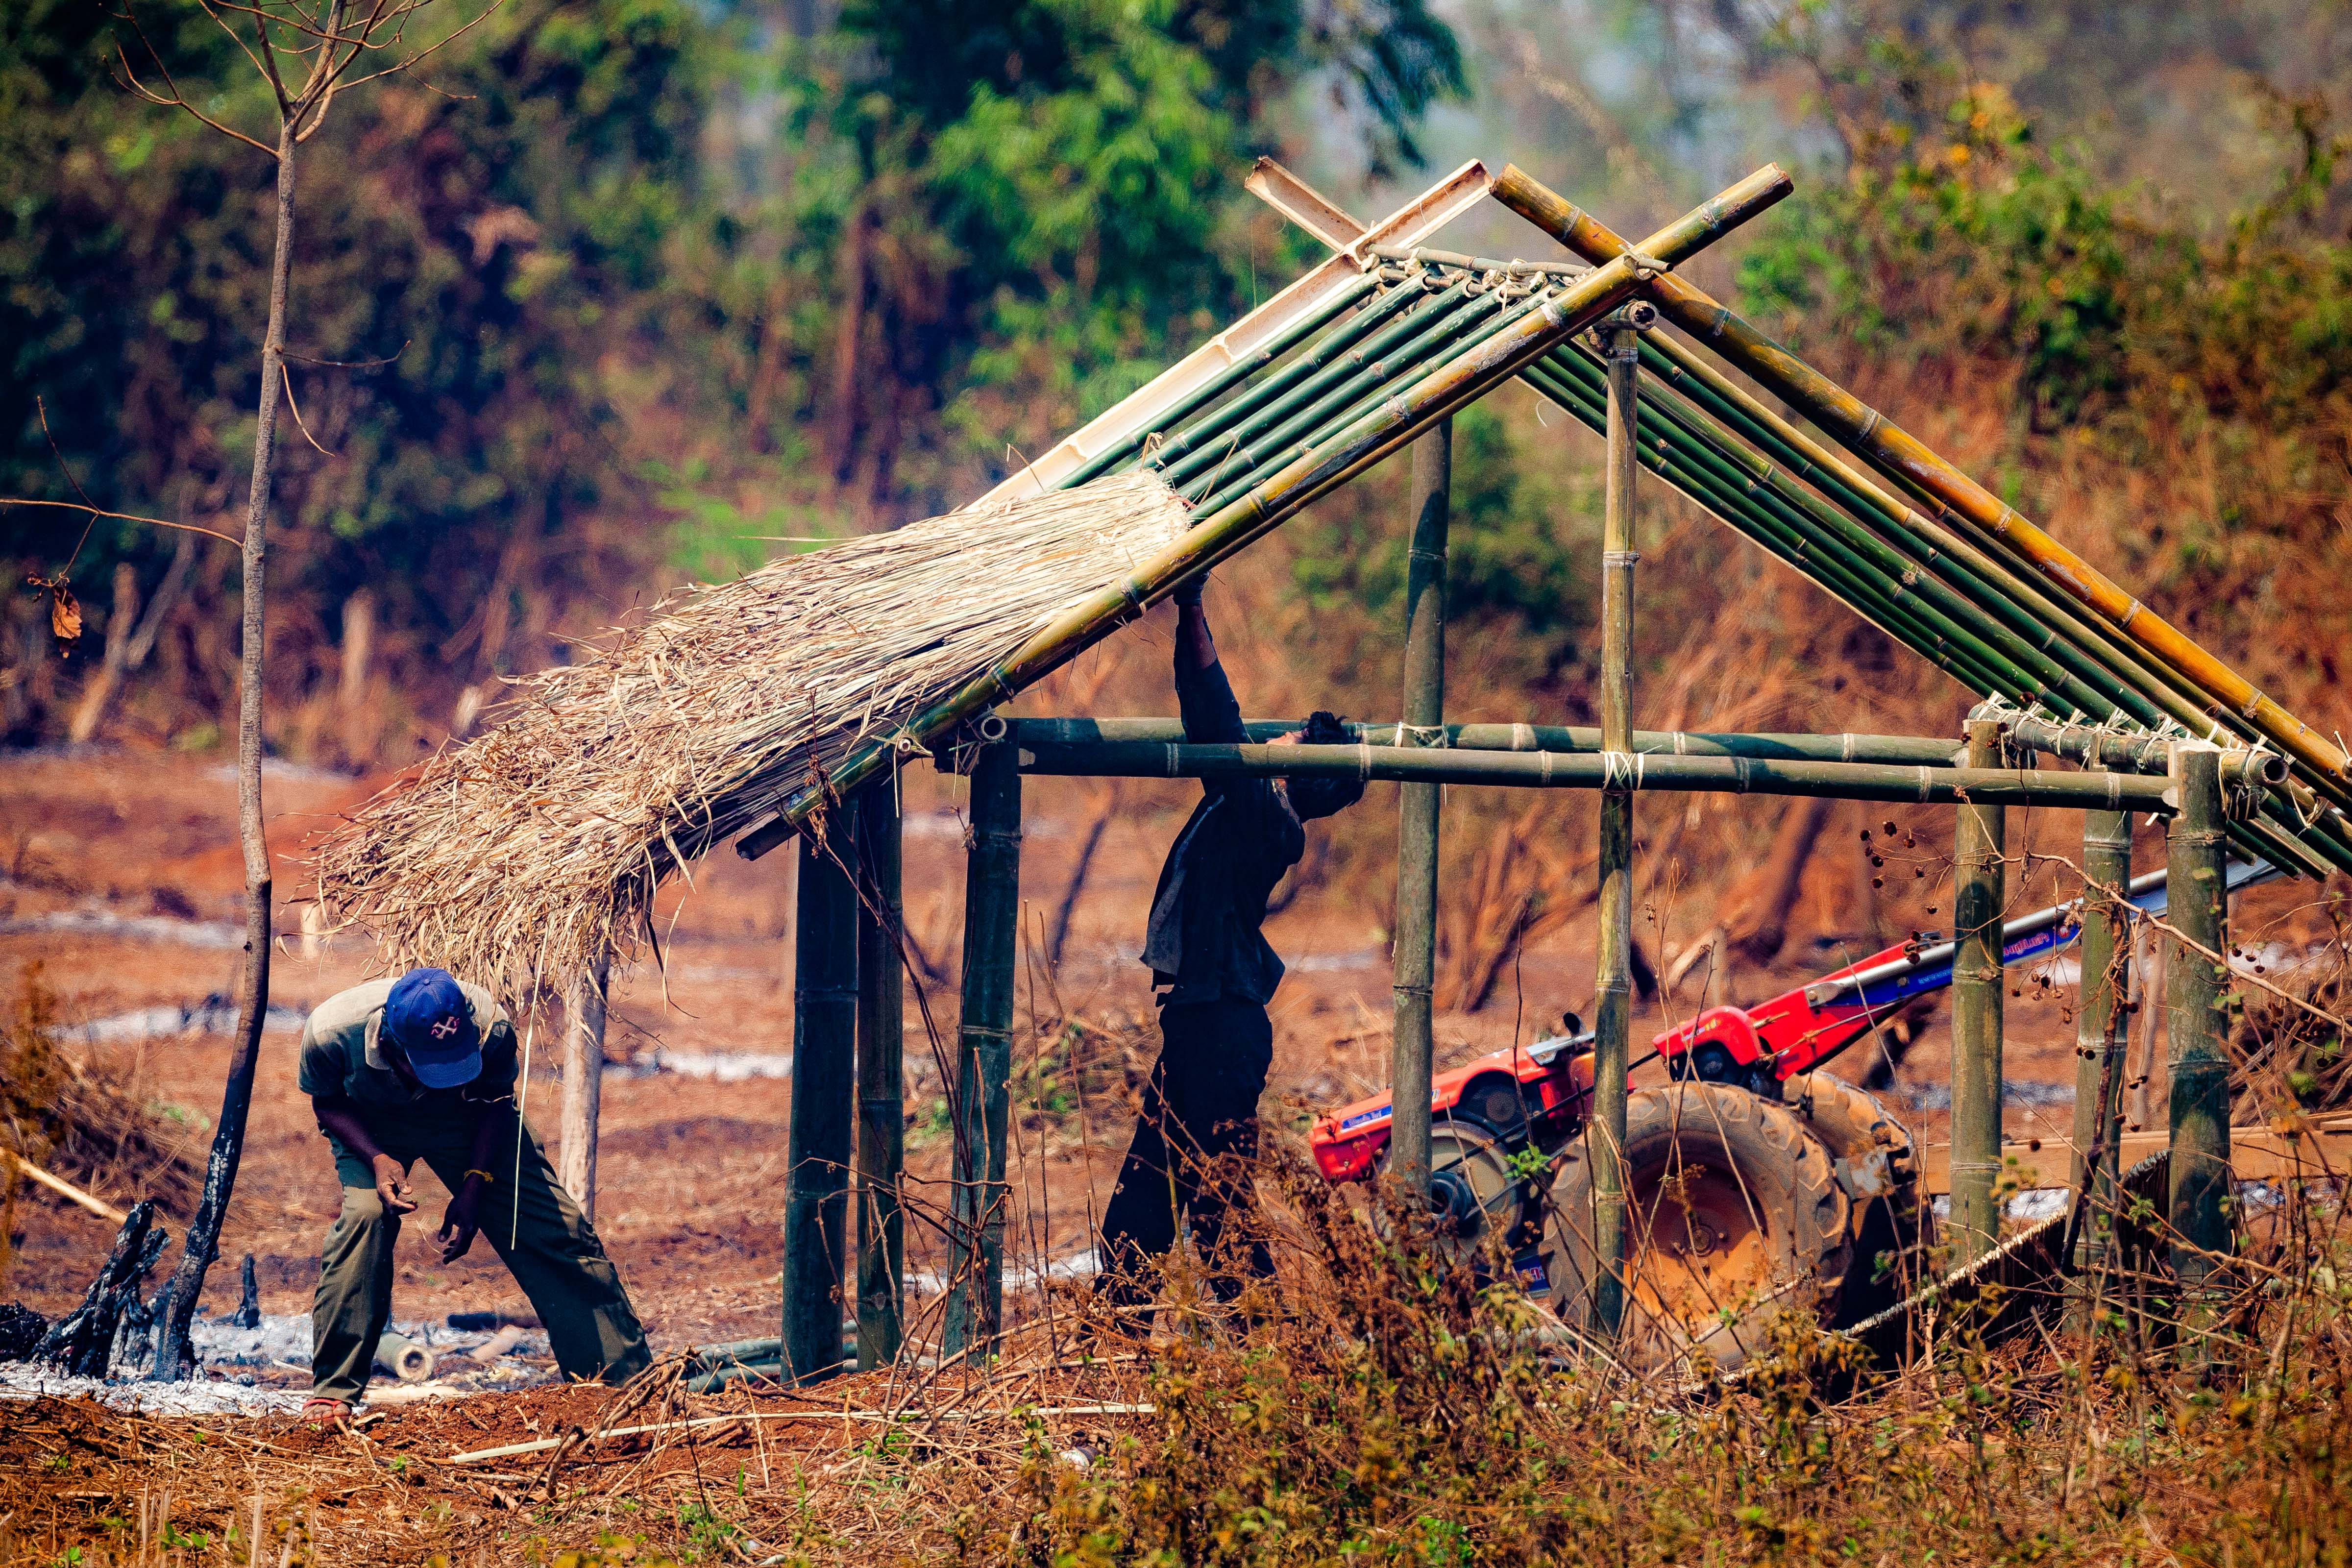 Laos, Sekong Prov, Building A House, 2008, IMG 0465